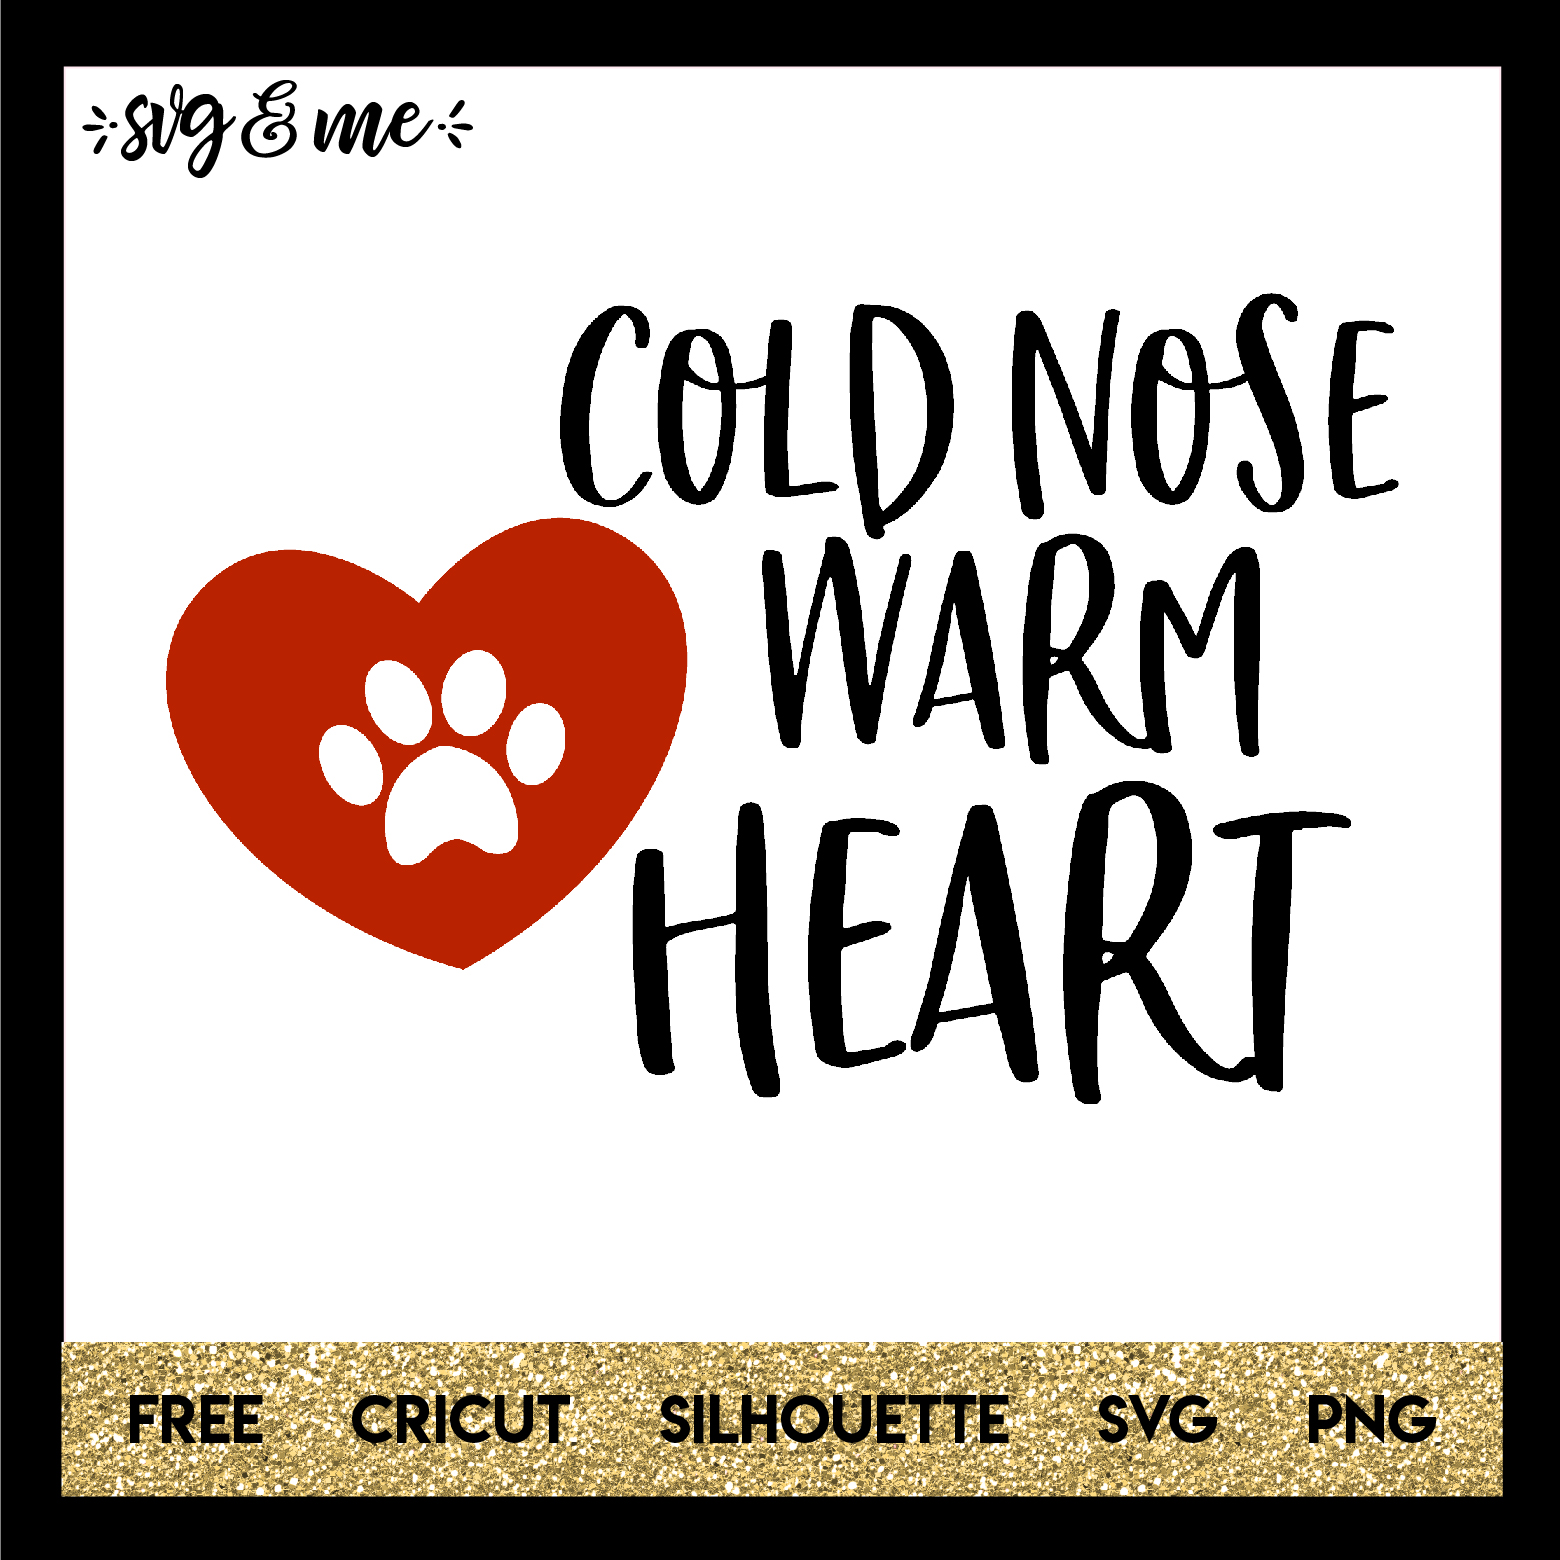 FREE SVG CUT FILE for Cricut and Silhouette DIY Projects - Cold Nose Warm Heart Dog SVG